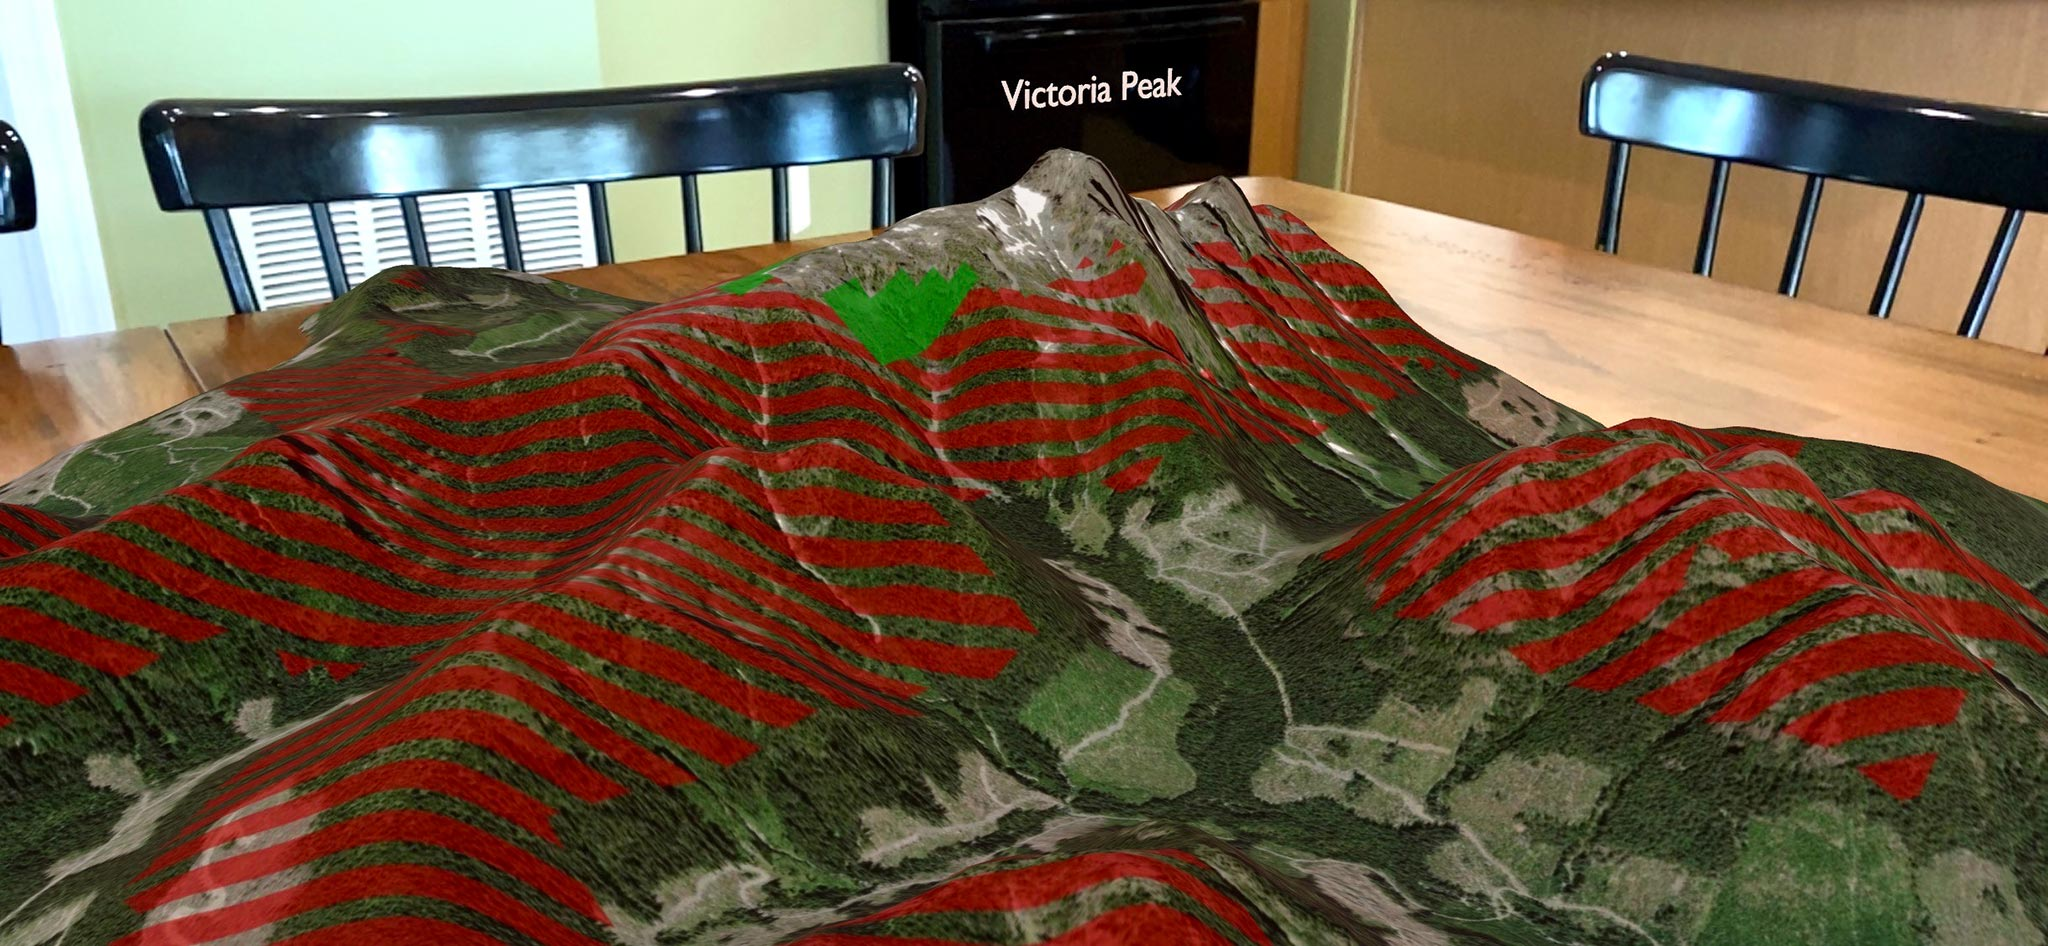 Screenshot from an iPhone of an augmented reality map showing Victoria Peak on a kitchen table.